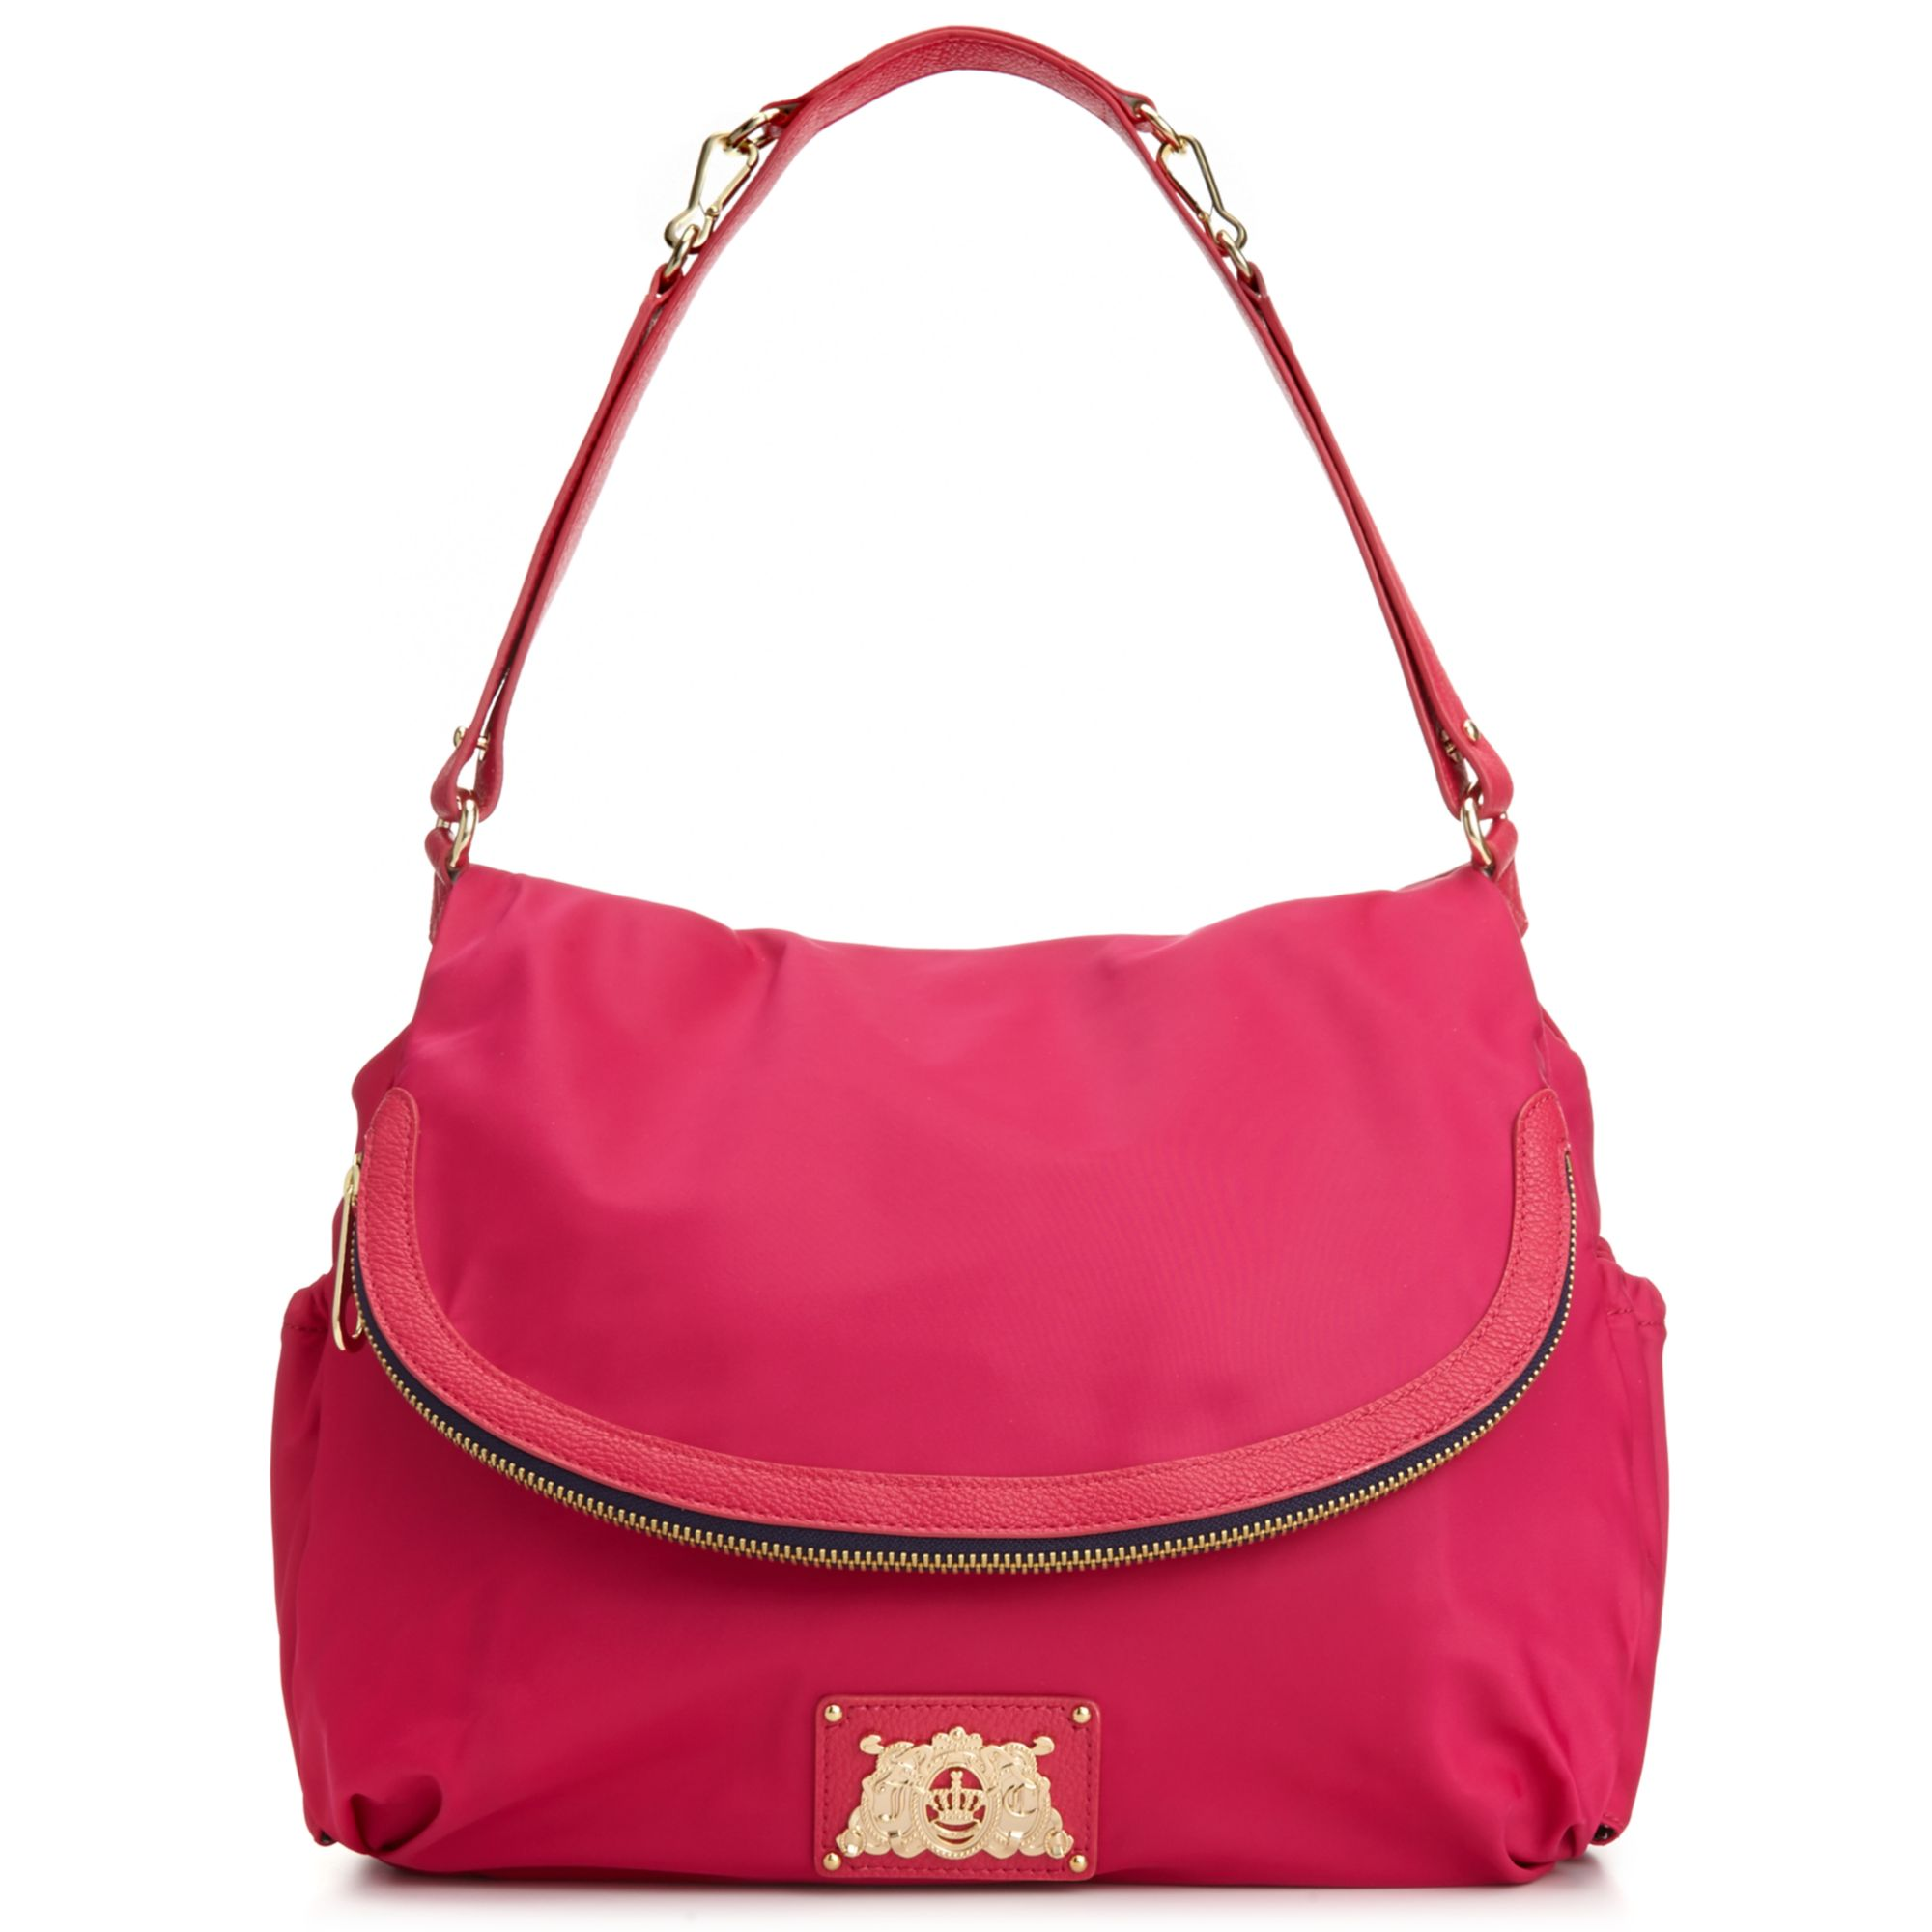 Lyst - Juicy Couture Malibu Nylon Crossbody Baby Bag in Pink 31c19c5b64